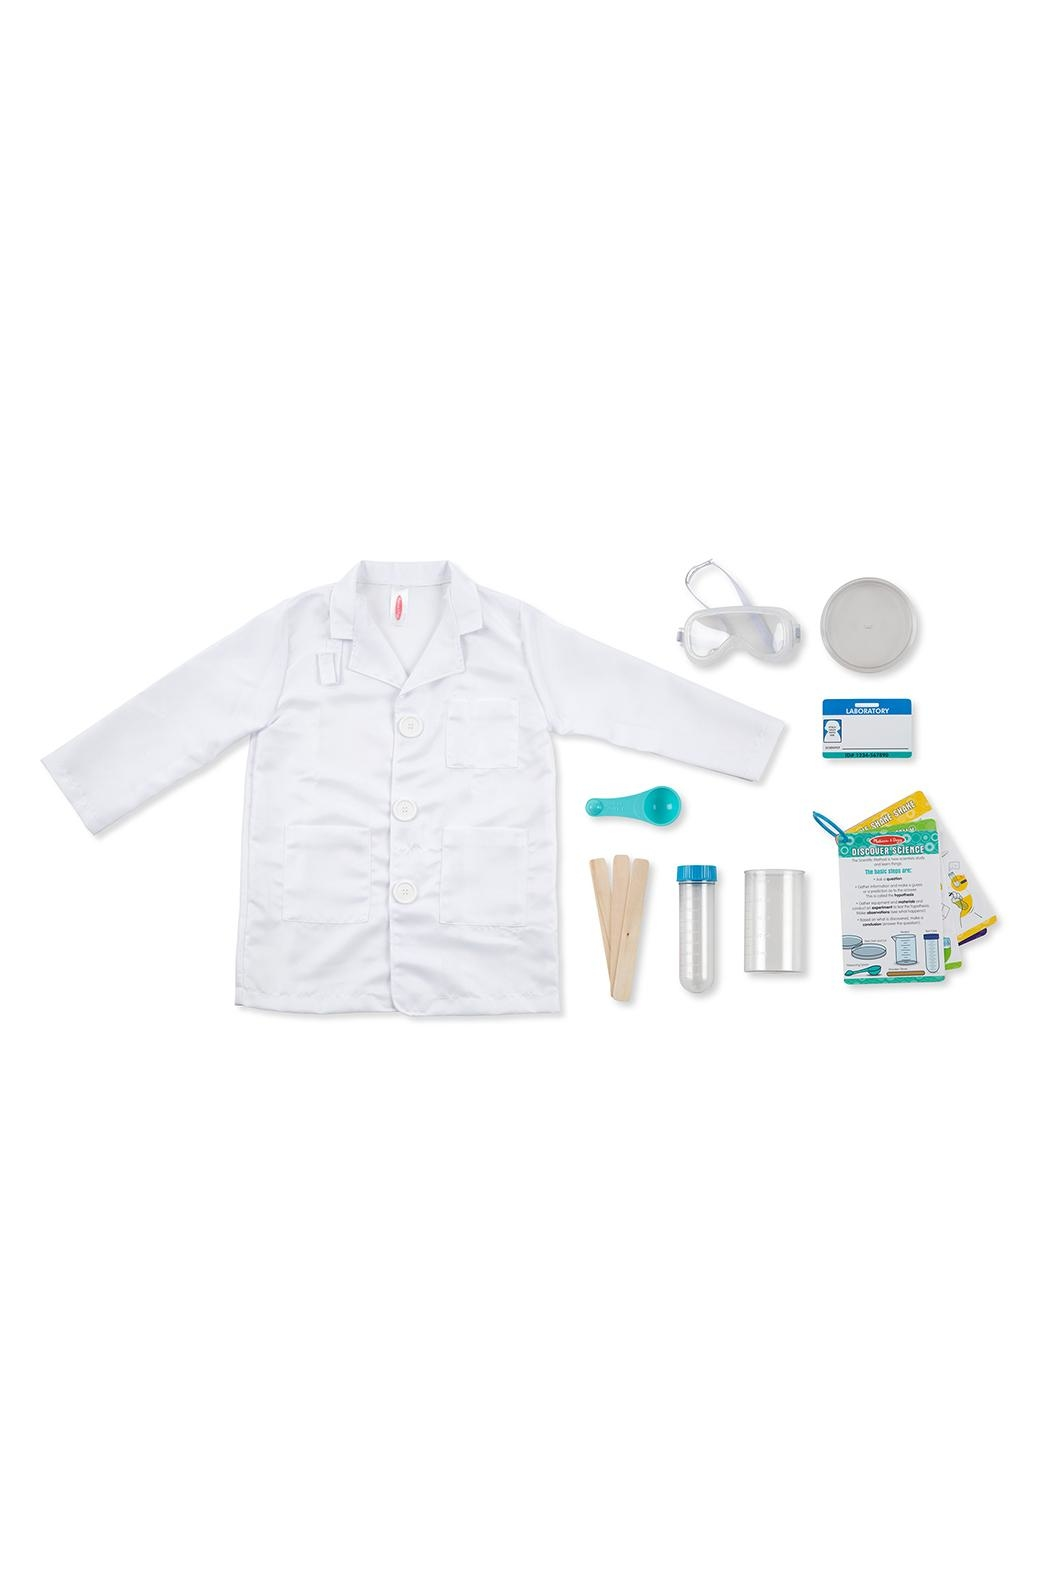 Melissa & Doug Scientist Role Play - Main Image